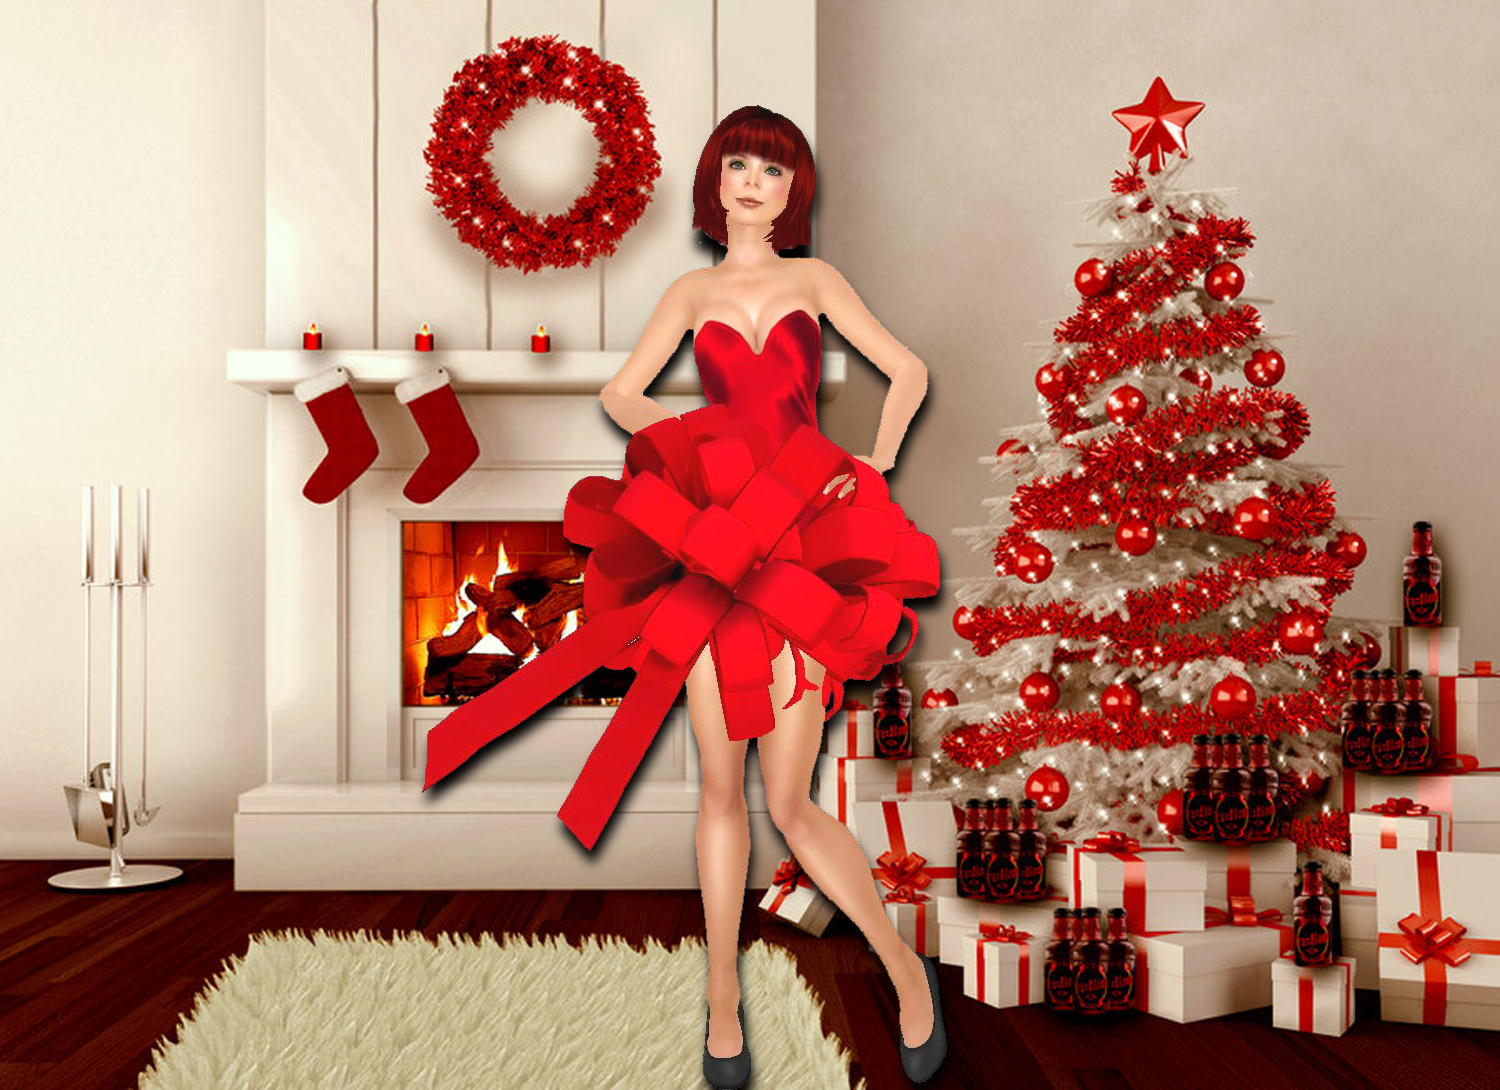 i got 3 of those presents but the best thing is the great my ribbon dress 250 l i adore it thank you so much santa and vita